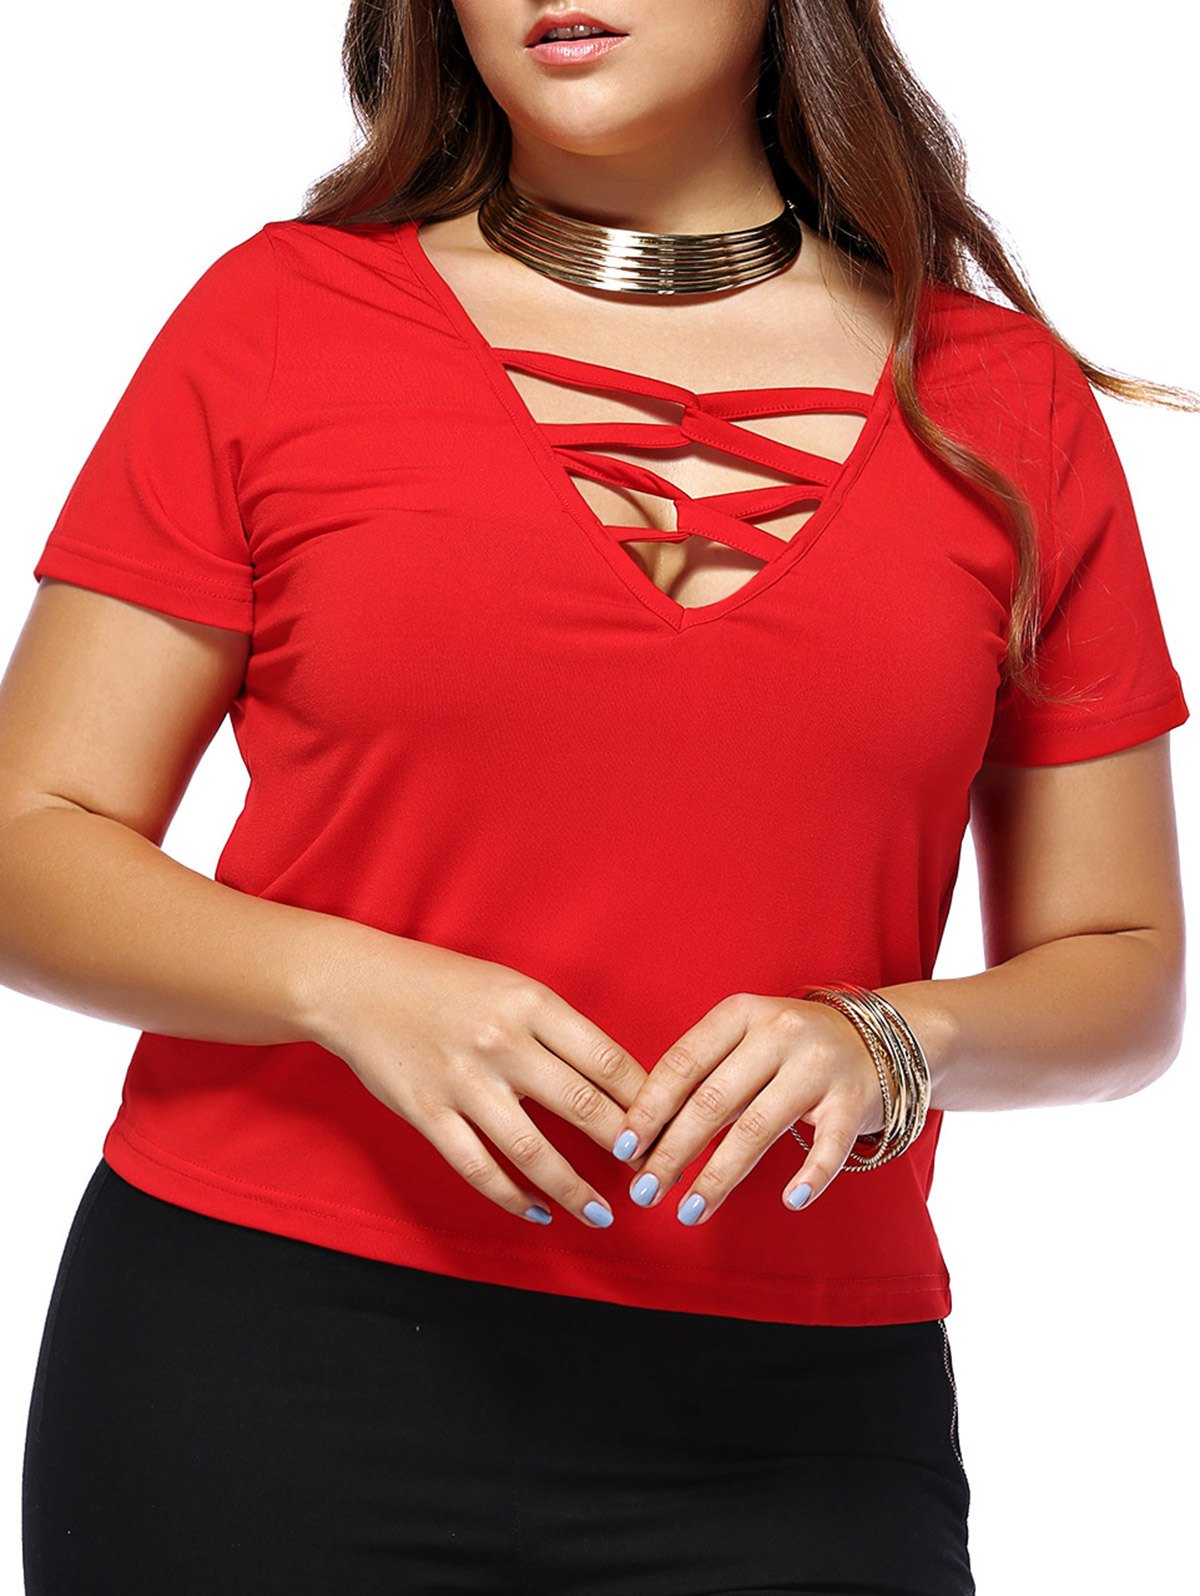 Alluring Plus Size Red Criss Cross Plunging Neck Women's T-Shirt